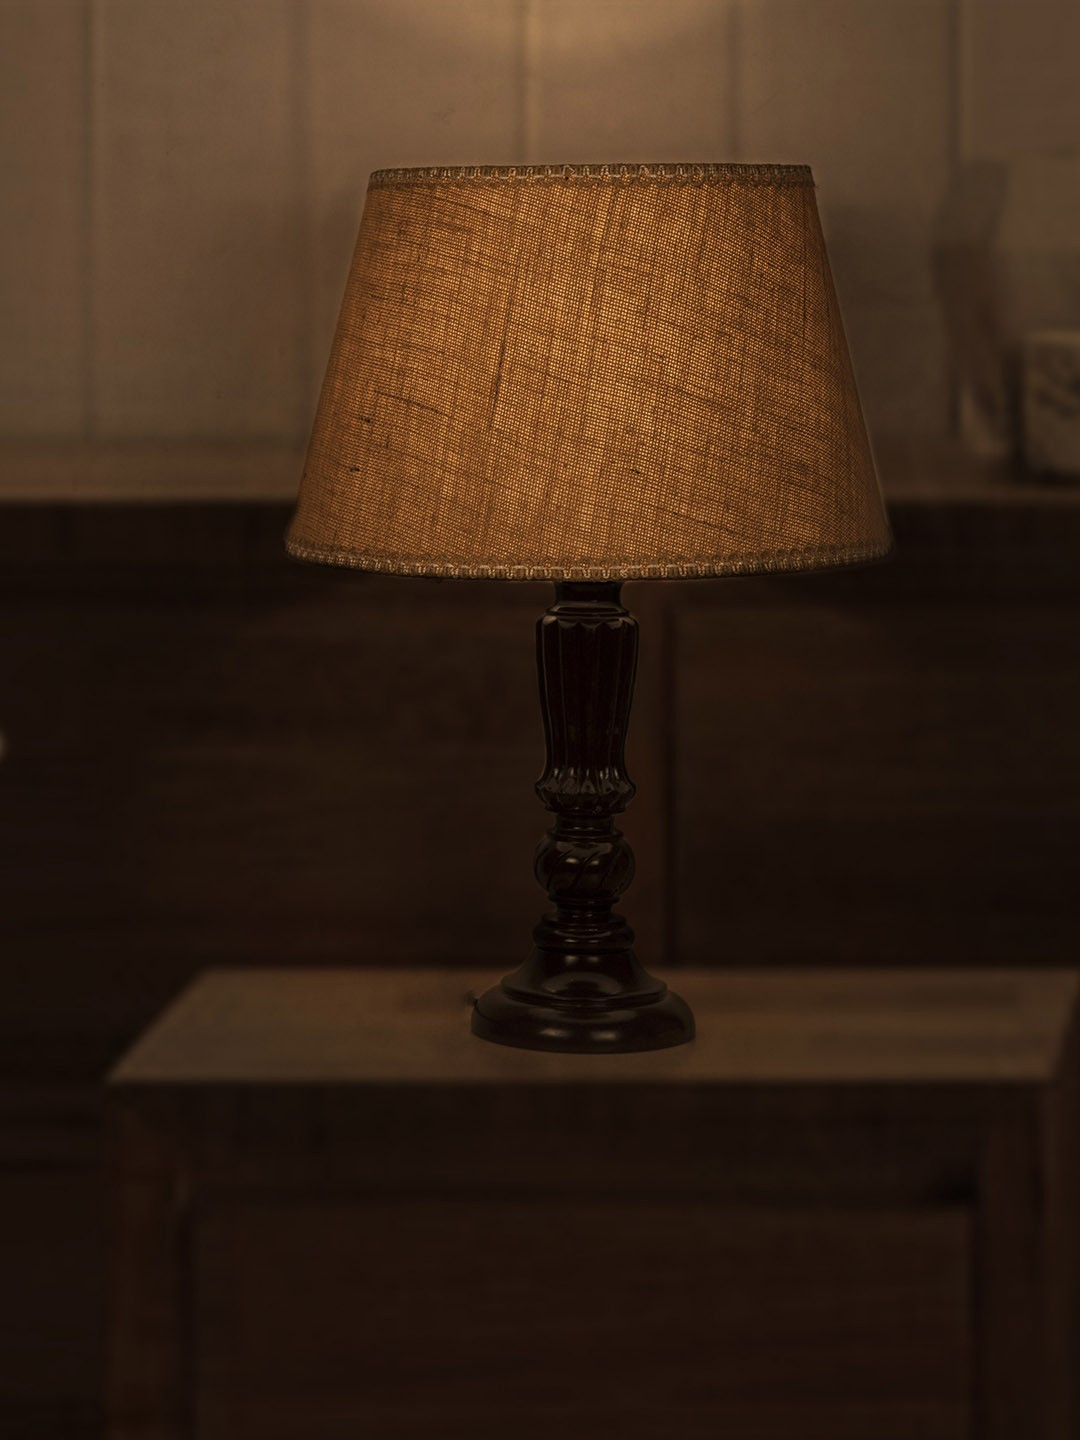 Brown Distressed Country Table Lamp with Jute Lace Shade